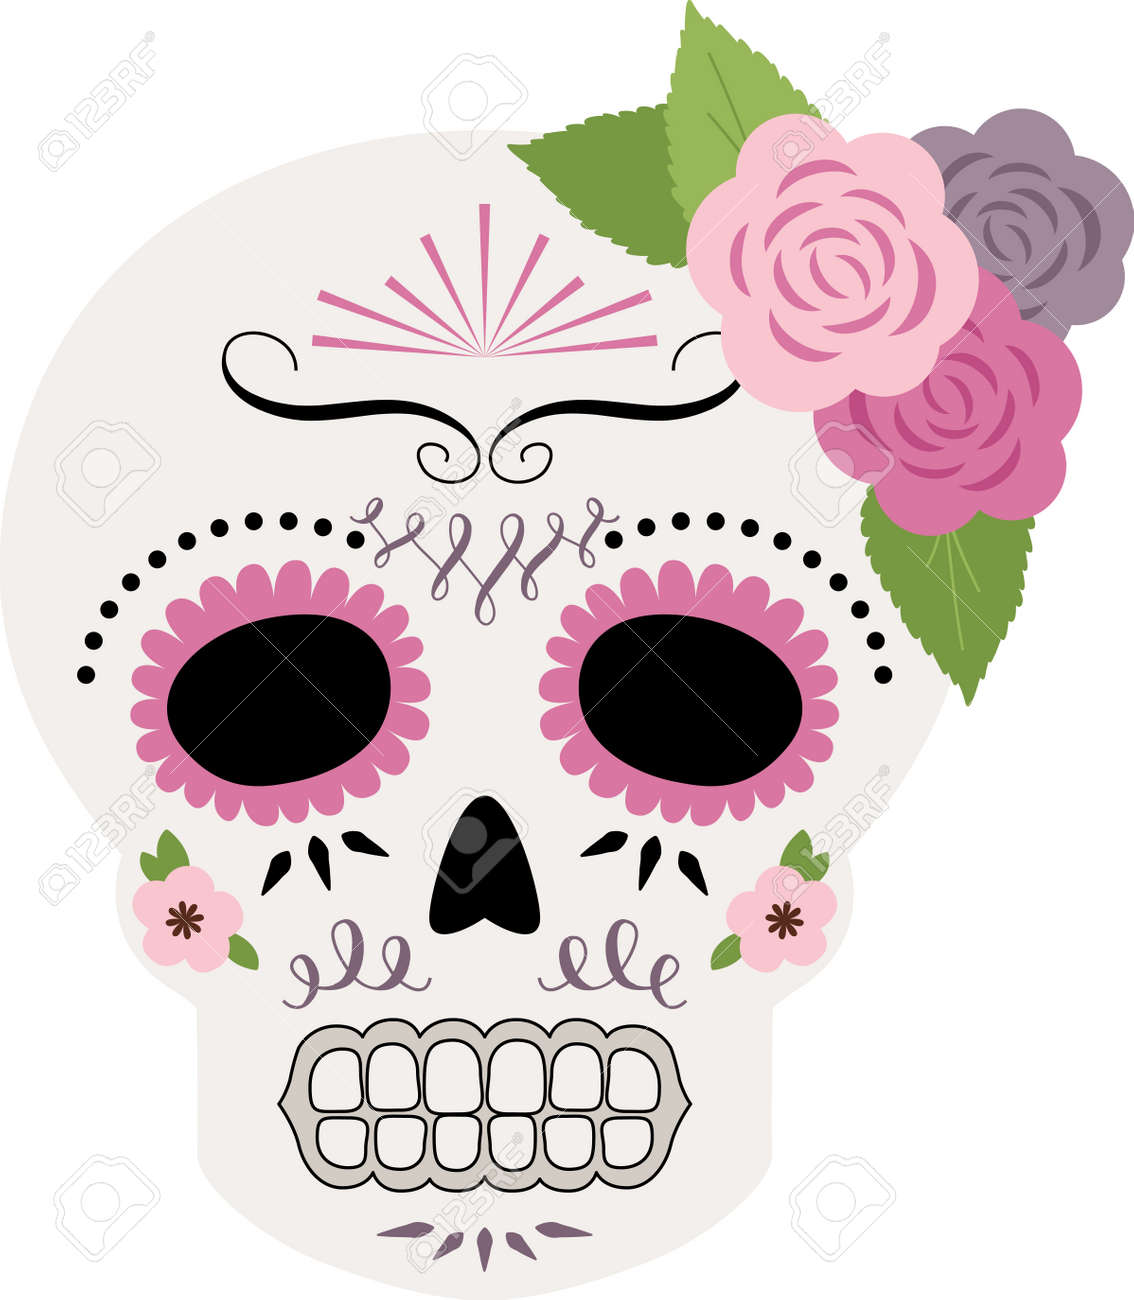 Celebrate the Dia de los Muertos with this light, pretty sugar skull design on throw pillows, holiday decorations, and more. - 43985419